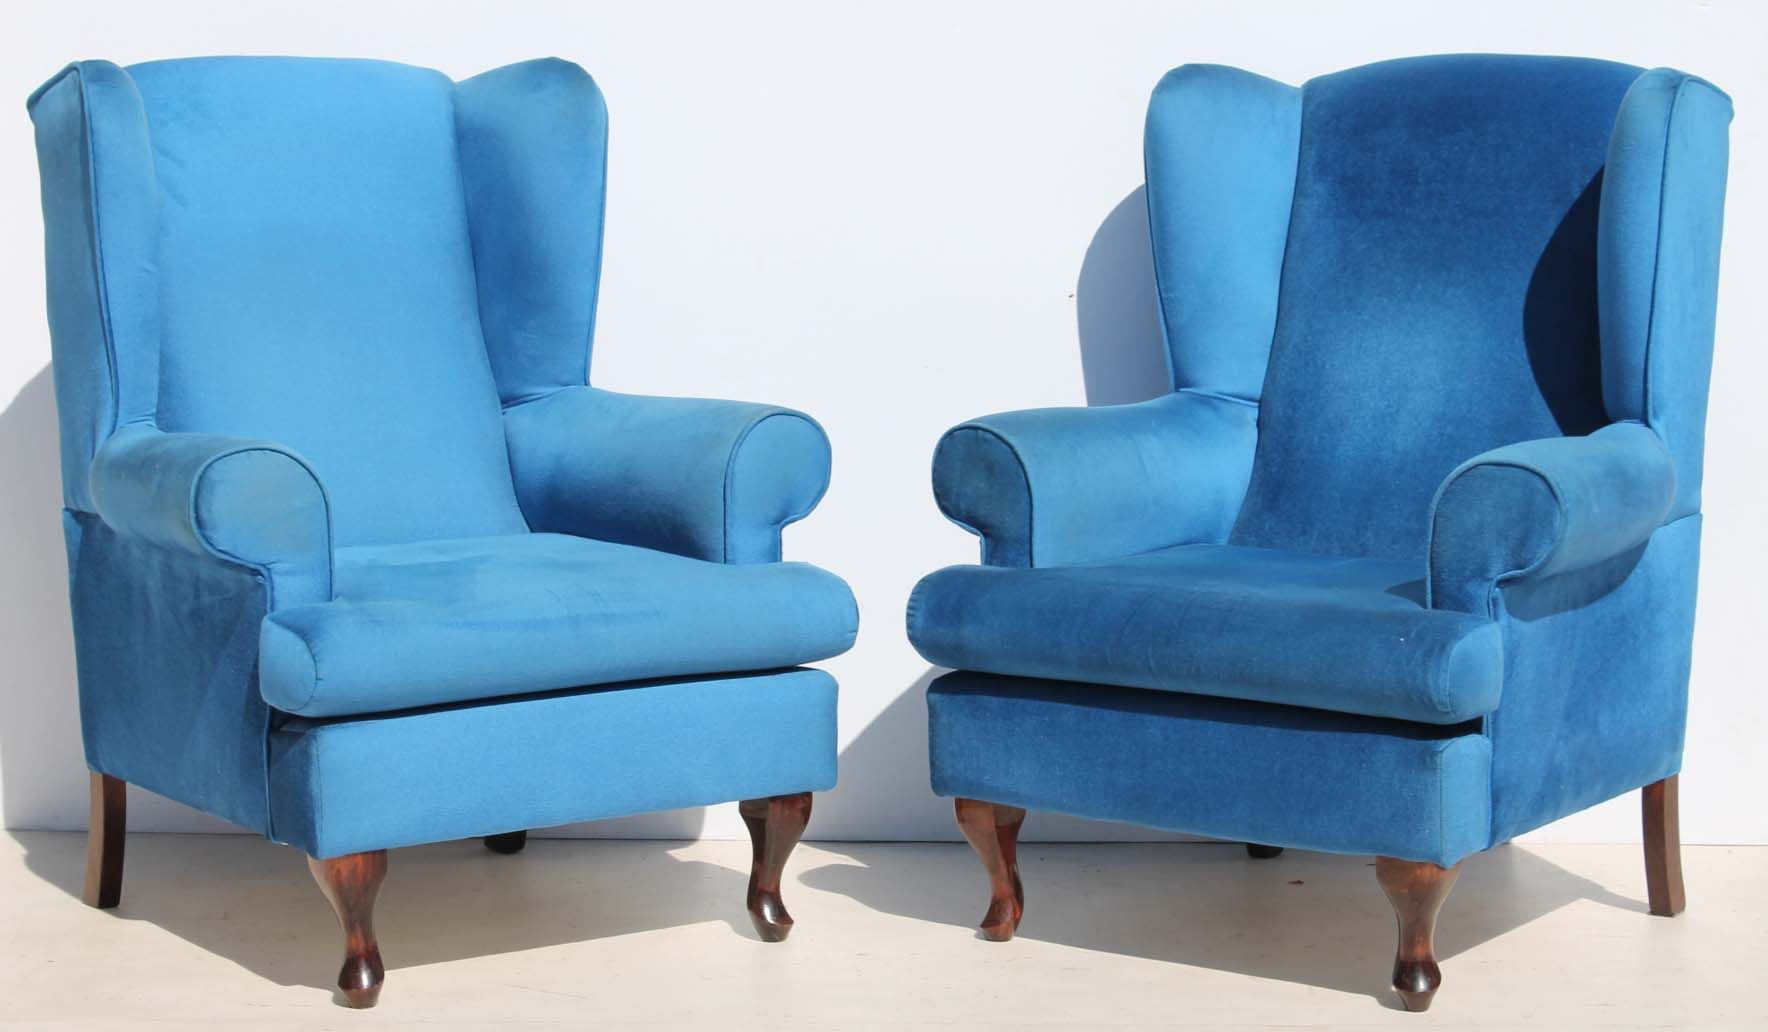 2 Blue Queen Anne Wingback Chairs Condition: Used 2 Blue Queen Anne Wingback  Chairs Size